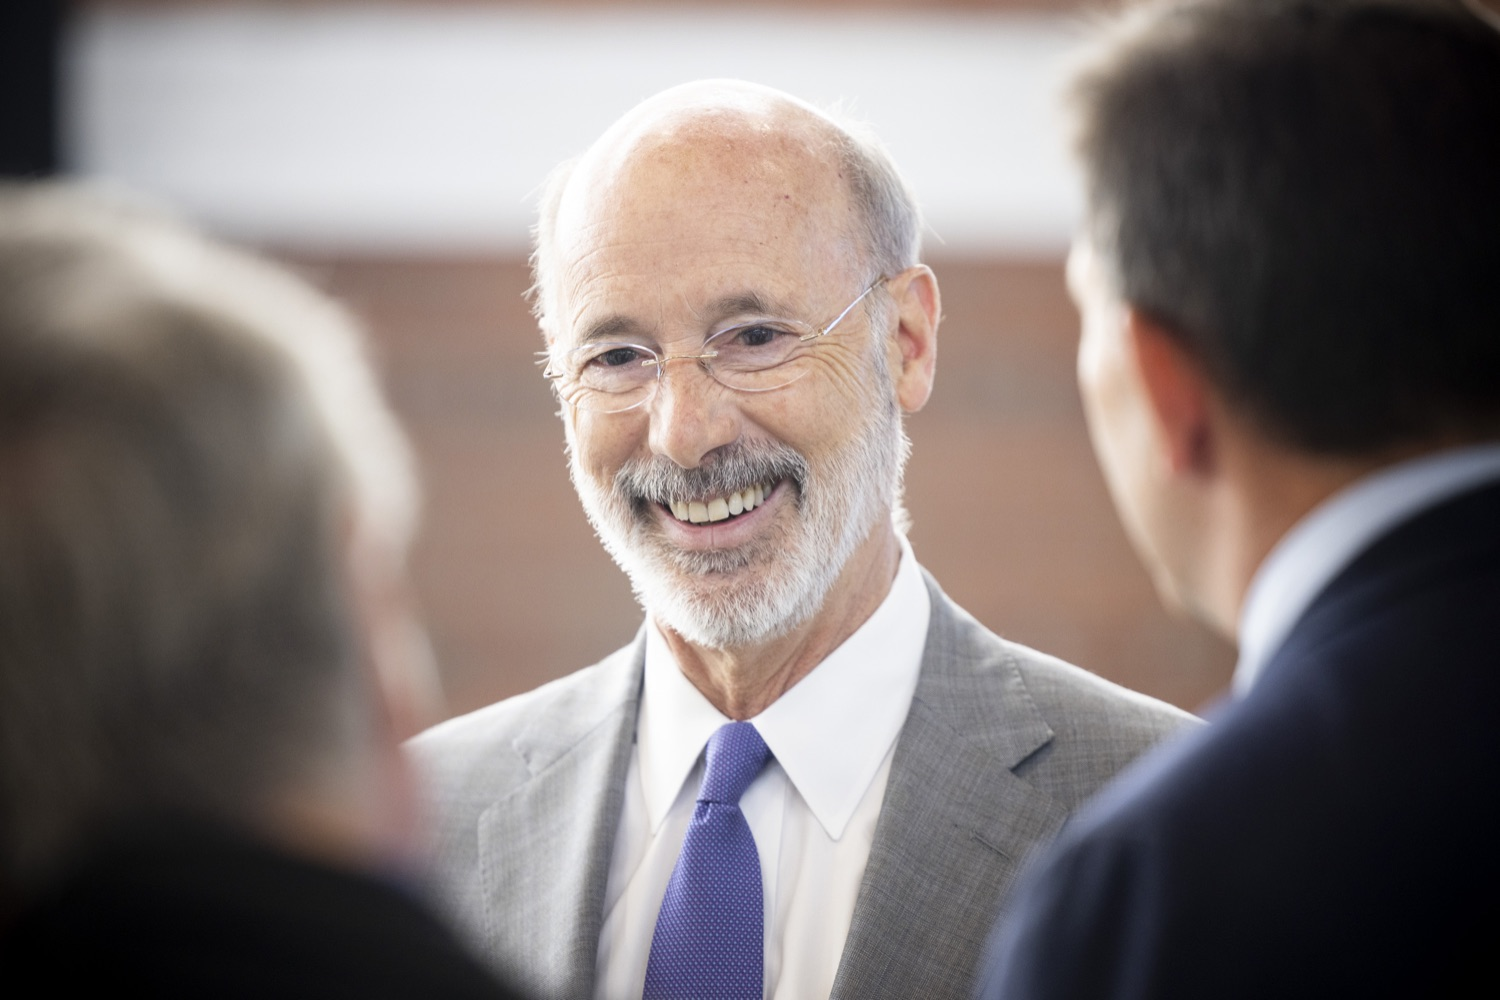 """<a href=""""https://filesource.wostreaming.net/commonwealthofpa/photo/18941_gov_economicDevelopment_dz_019.jpg"""" target=""""_blank"""">⇣Download Photo<br></a>Governor Tom Wolf today visited Factory LLC in Bethlehem to tour the facility and highlight the importance of investing in Pennsylvanias start-up companies. During the visit, he met with companies affiliated with Factory, including Stuffed Puffs®, which received a $1 million funding proposal from the commonwealth in 2019 to expand its manufacturing operations and create jobs, Mikeys®, Pipcorn®, Honey Stinger®, and ROAR® Organic. Bethlehem, PA  July 19, 2021"""